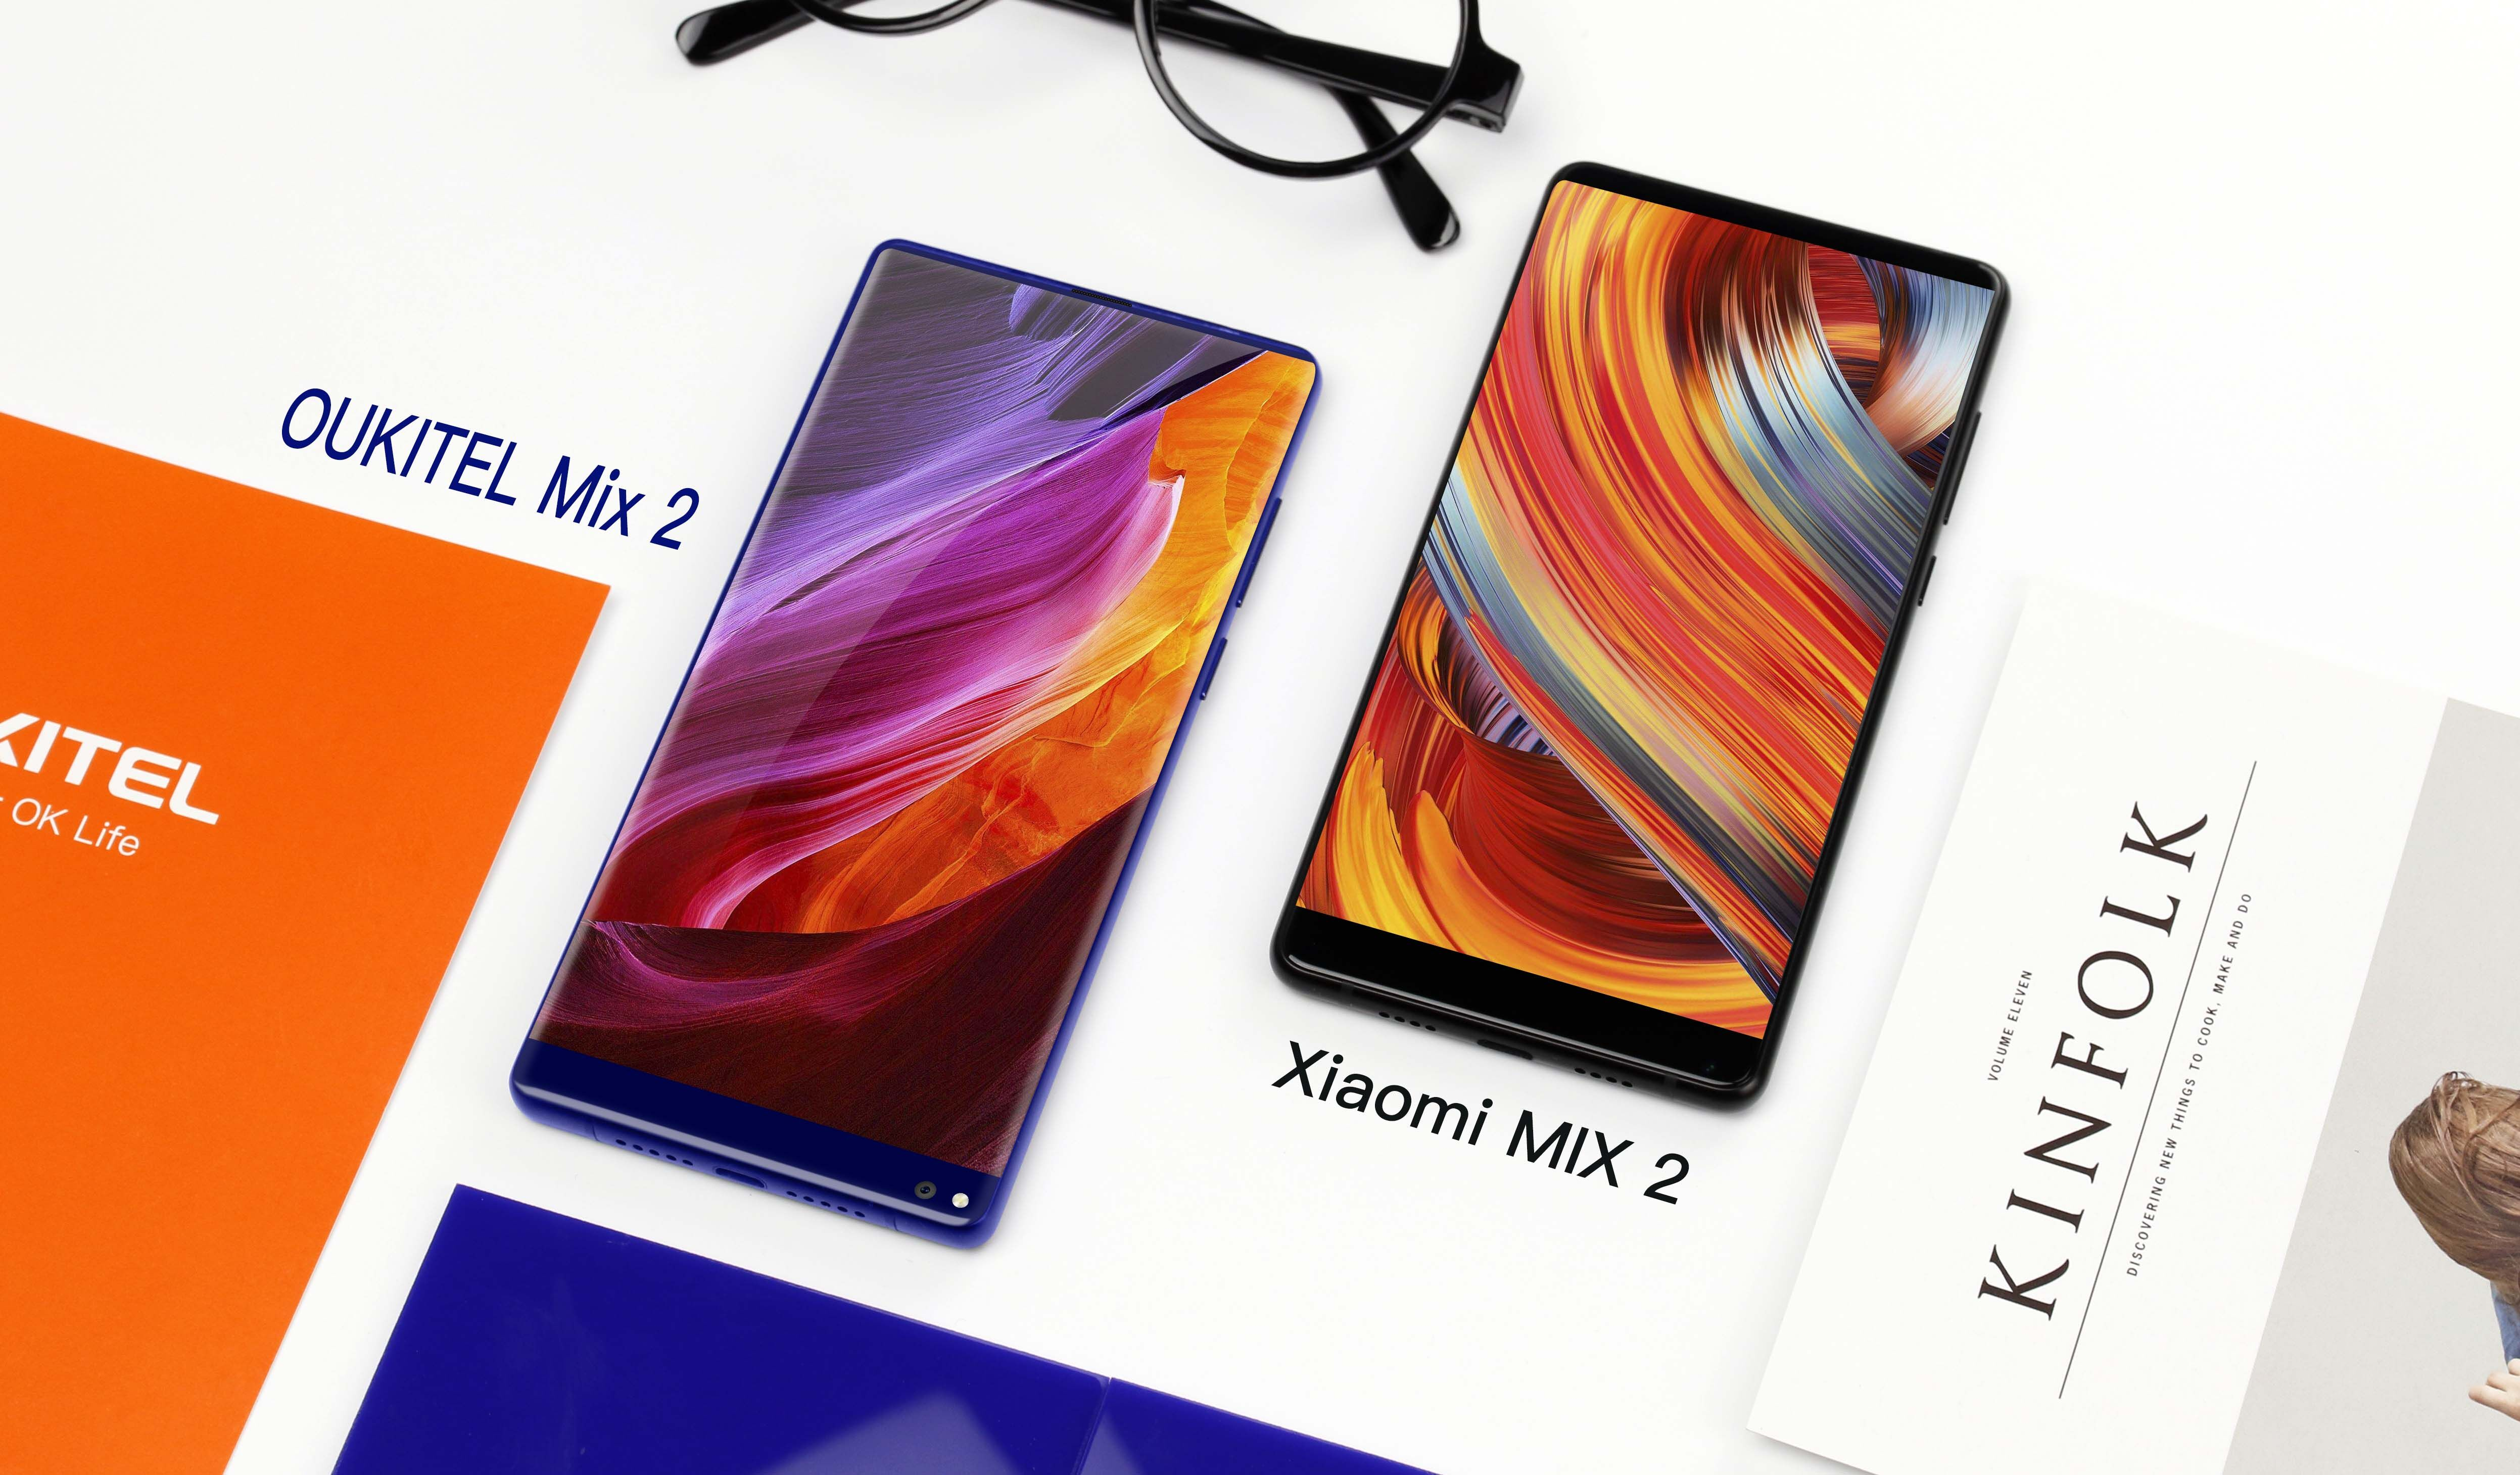 OUKITEL MIX 2: Review and Comparison with Xiaomi Mix 2